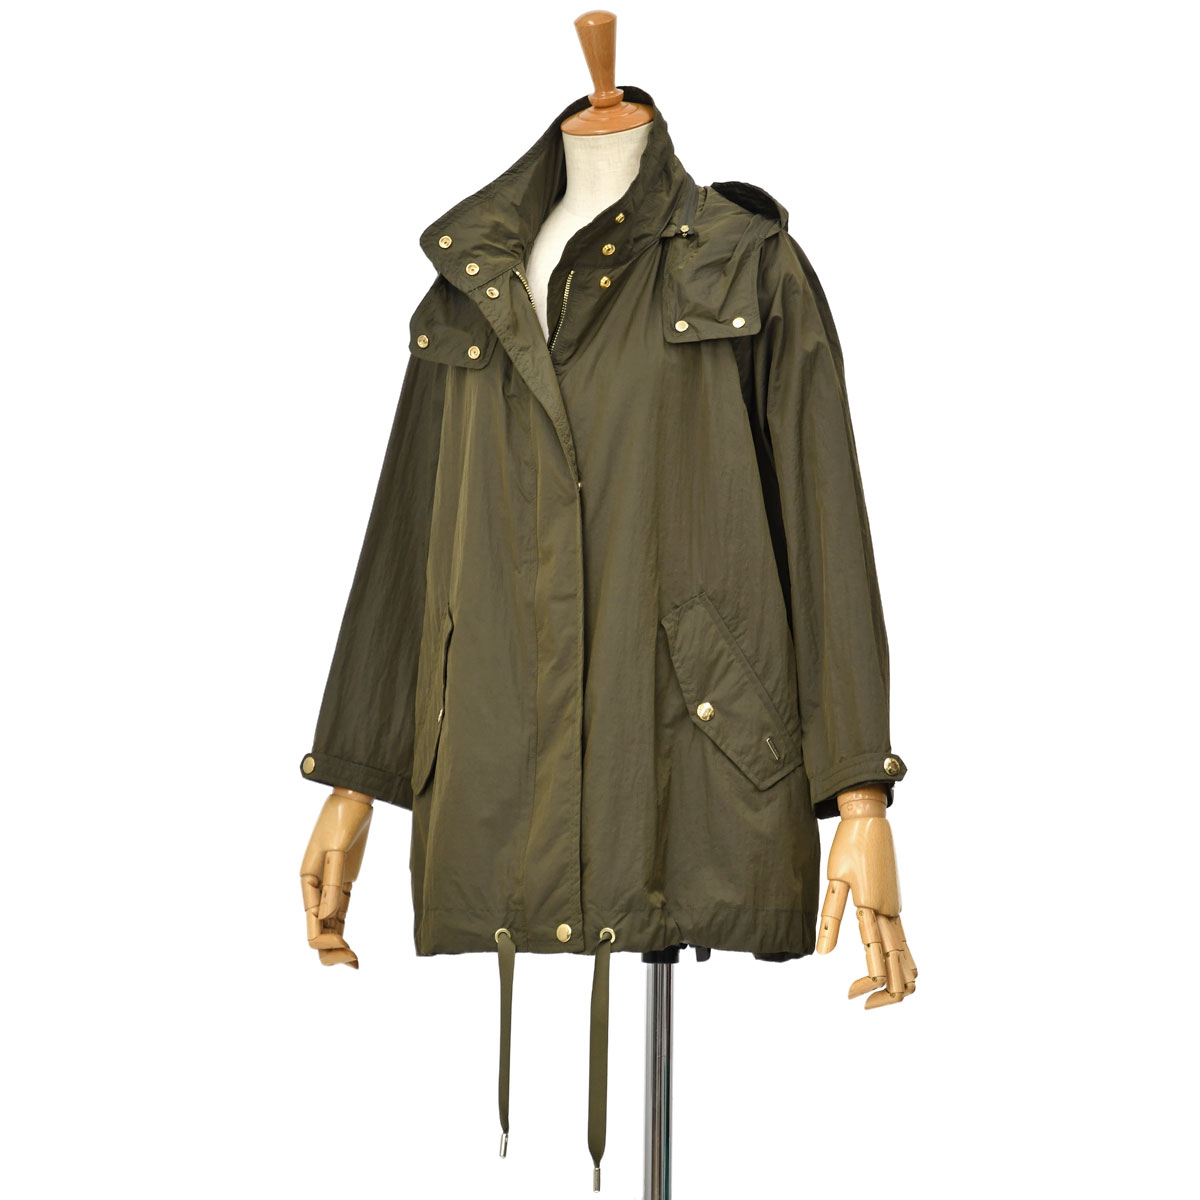 WOOLRICH【ウールリッチ】フーデッドコート ANORAK WWOU0465 6291 ARMY OLIVE ナイロン カーキ